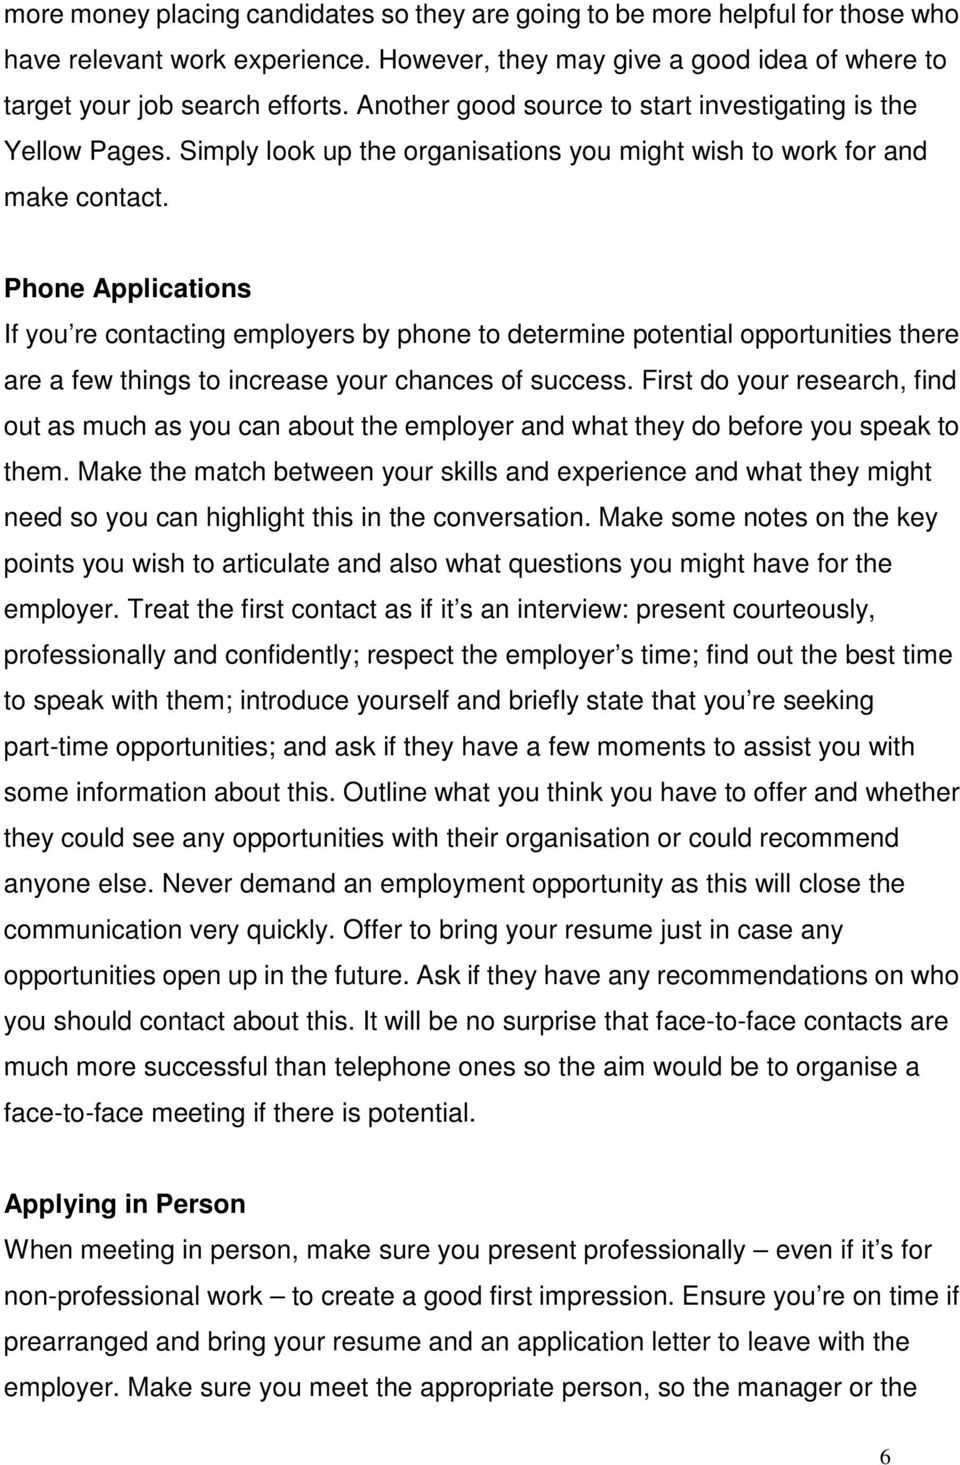 Phone Applications If you re contacting employers by phone to determine potential opportunities there are a few things to increase your chances of success.